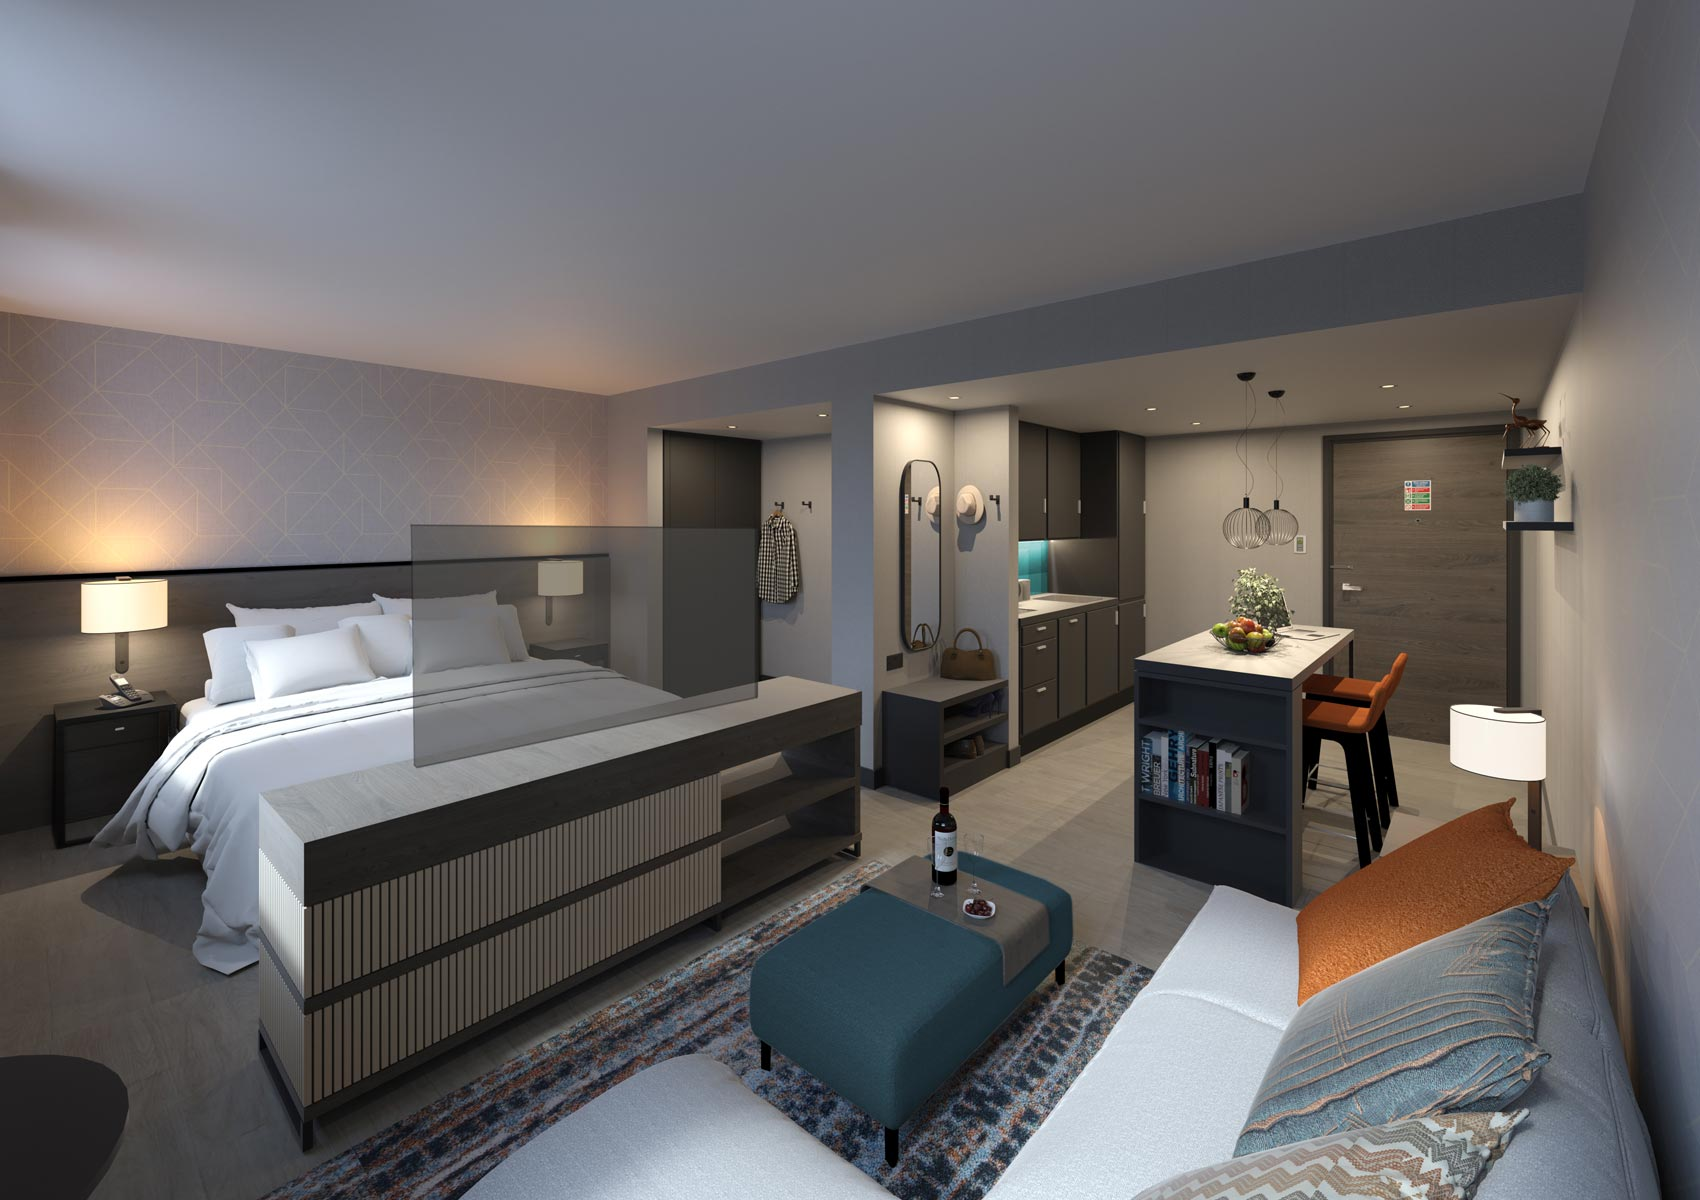 2 Sovereign Square, Leeds, 3D visual of hotel room